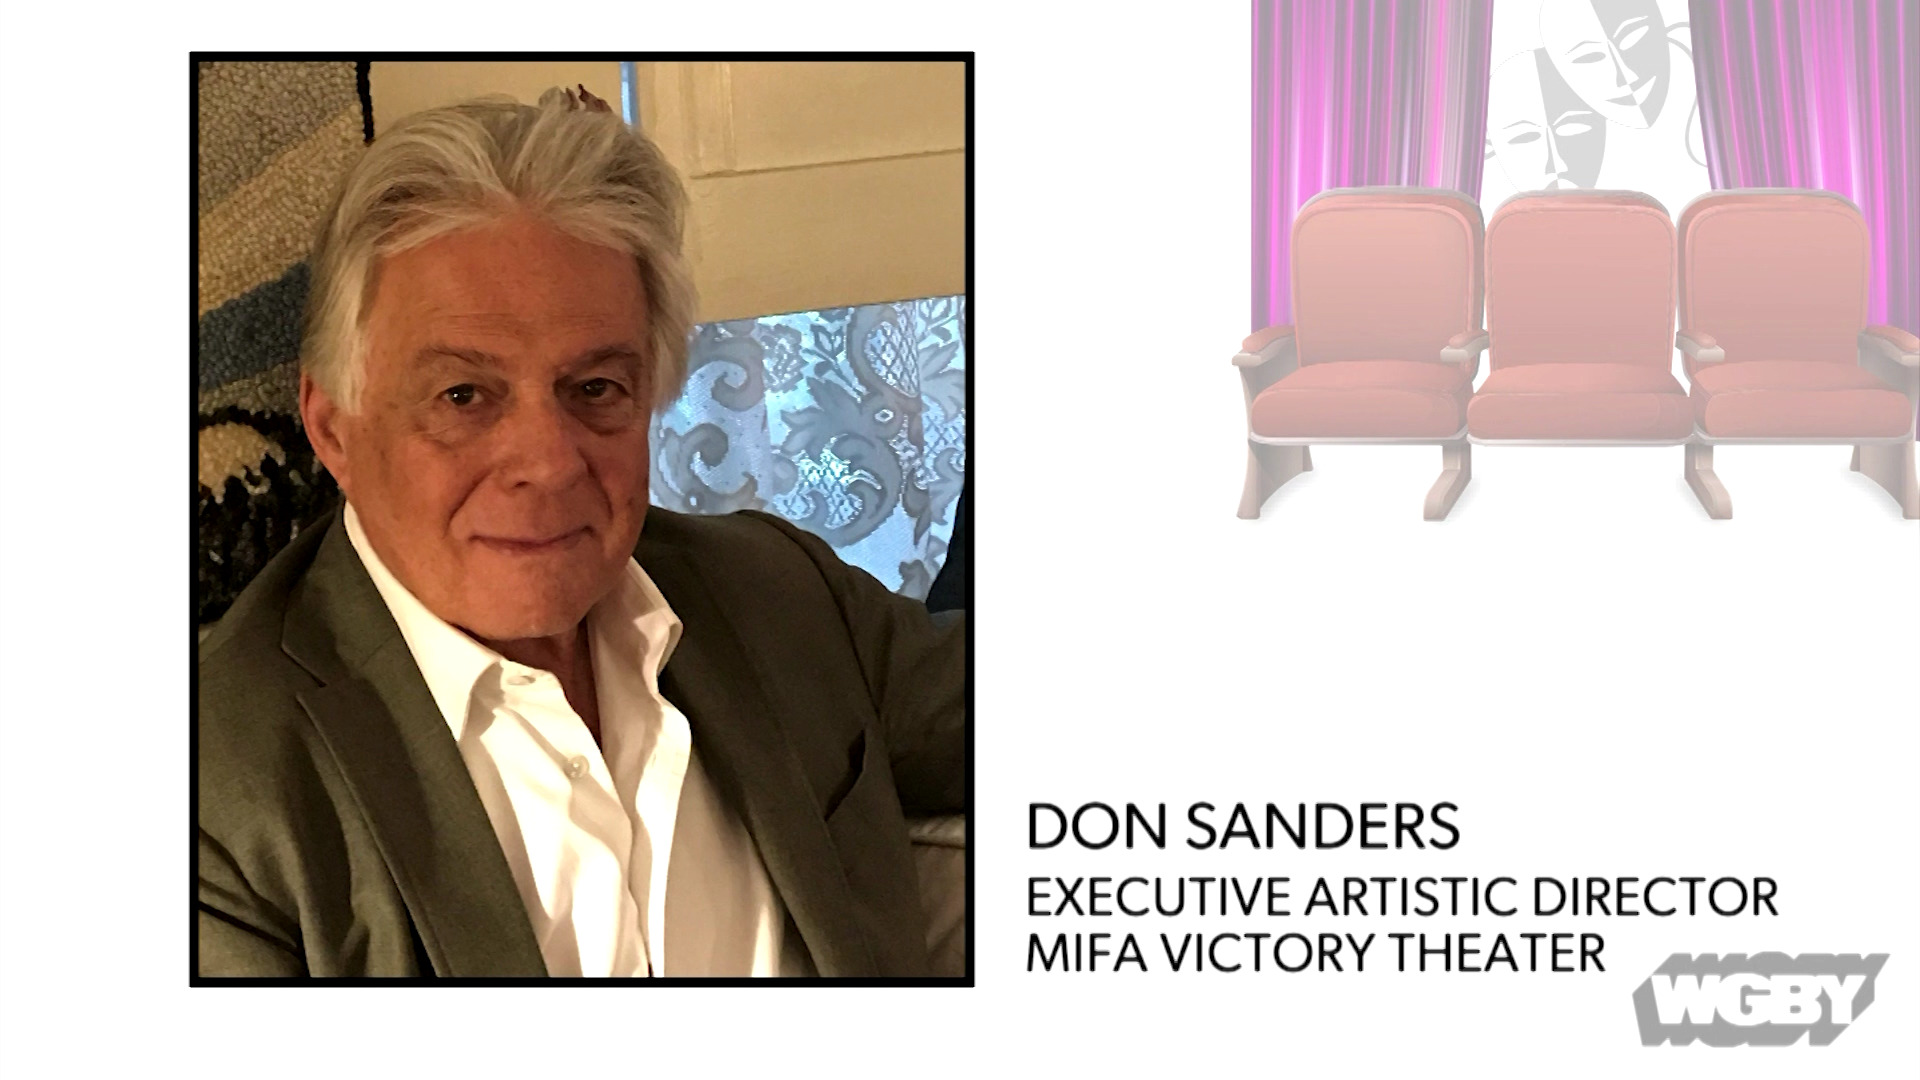 WATCH: MIFA Victory Theatre's Don Sanders talks about the challenges facing the performing arts during COVID-19 and the future of live performances.